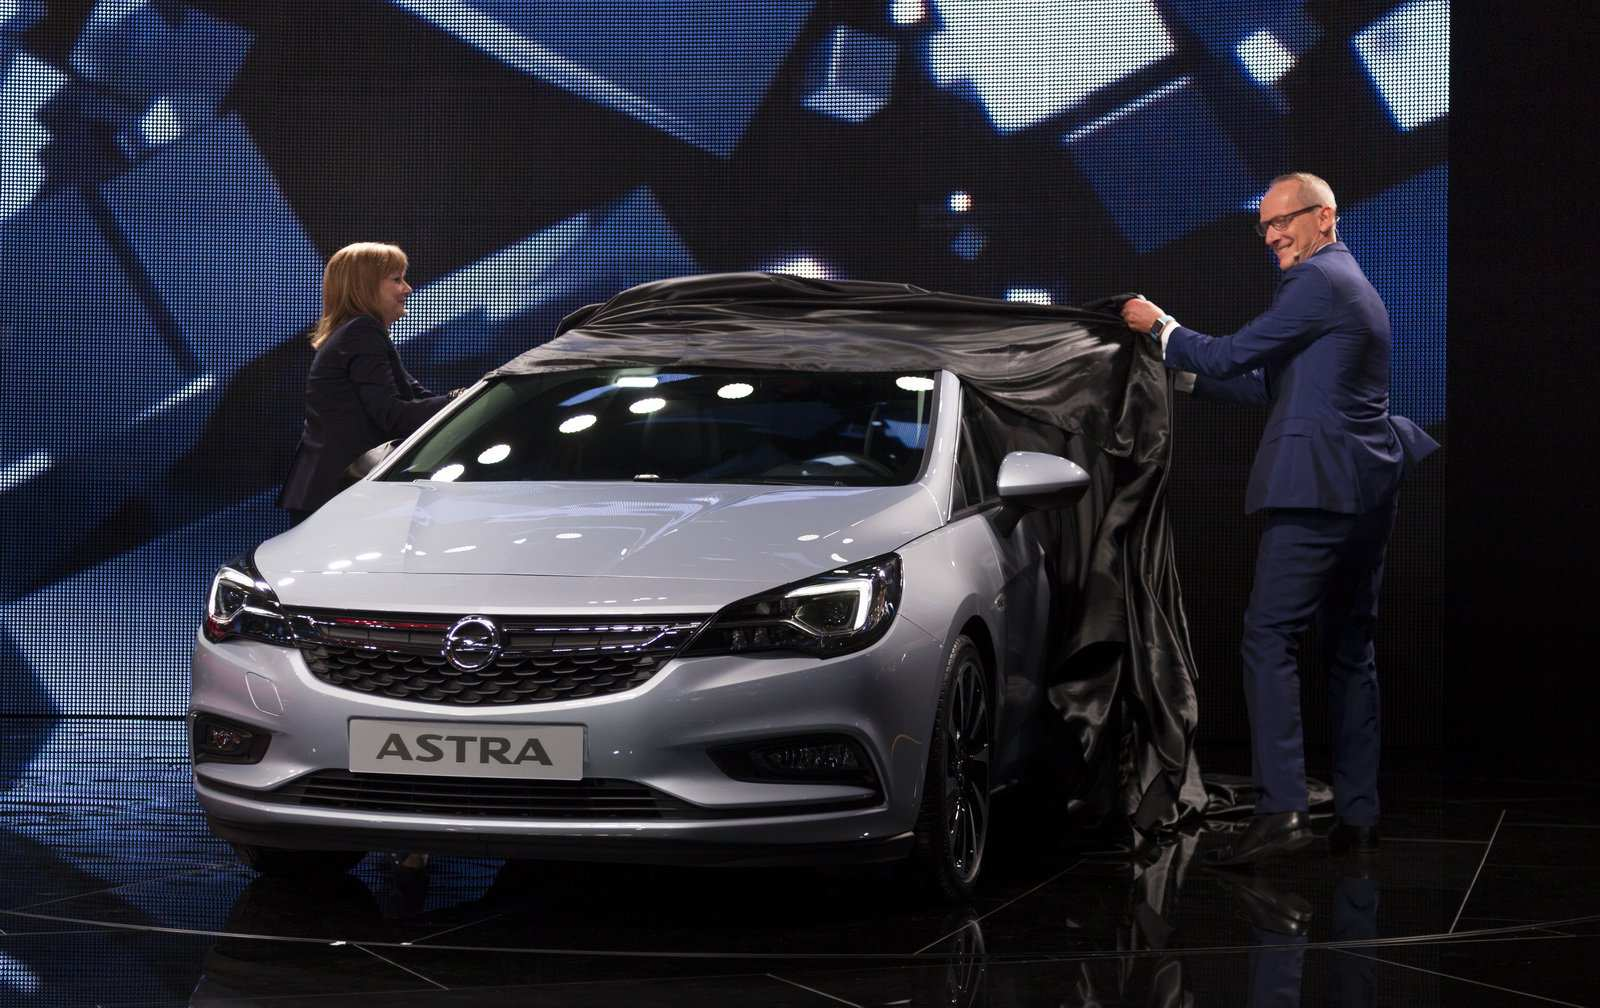 94 Great 2020 New Opel Astra 2018 Reviews for 2020 New Opel Astra 2018